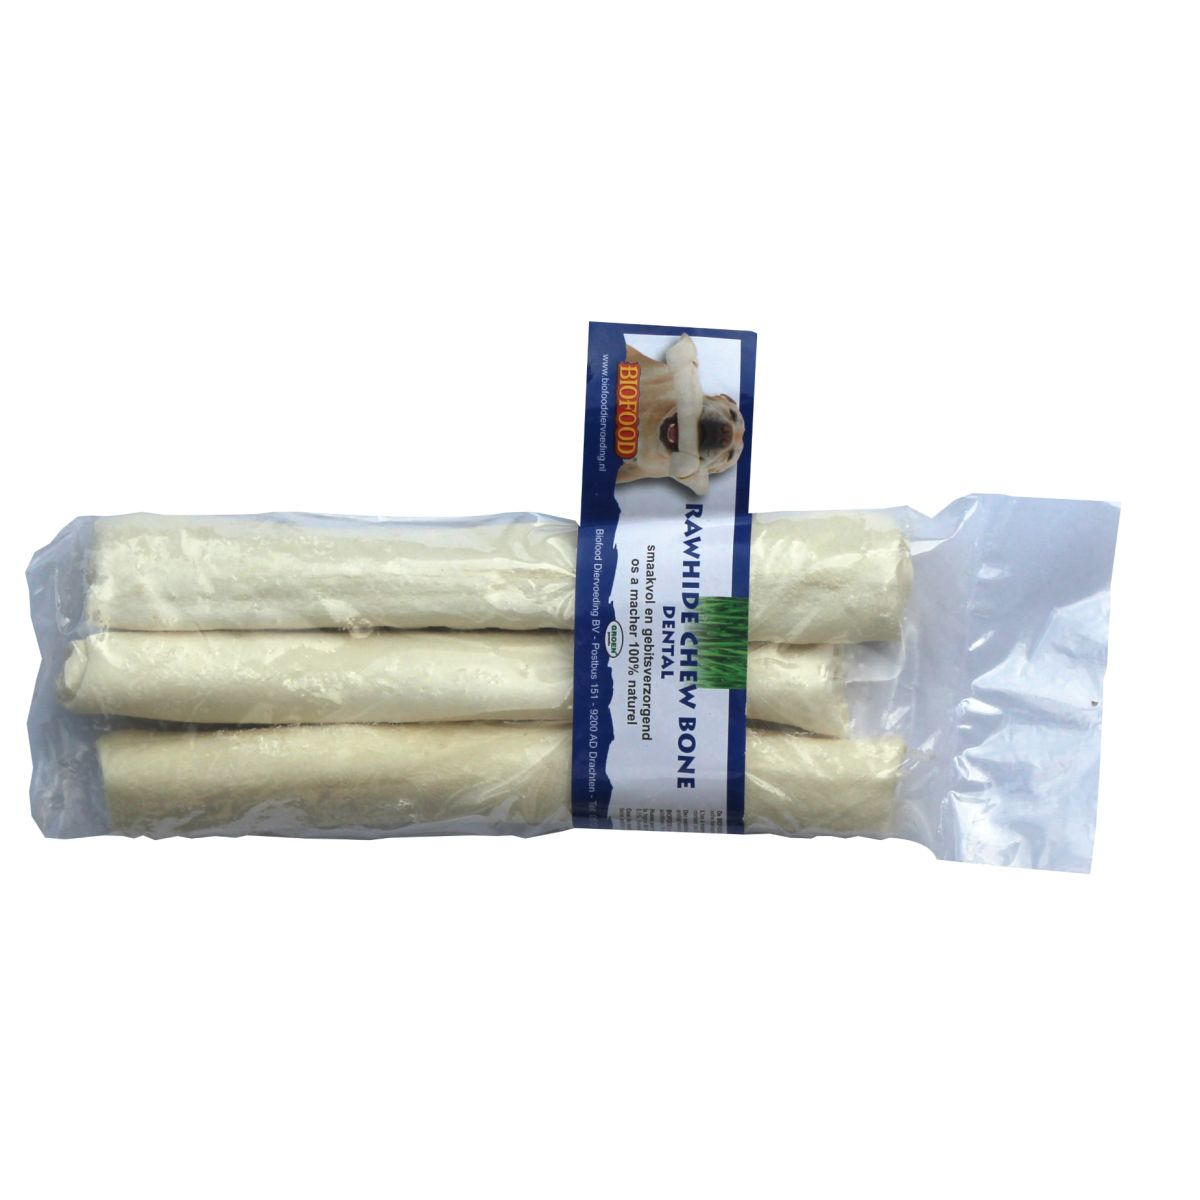 BF ROL SNACK DENTAL 3ST 00001